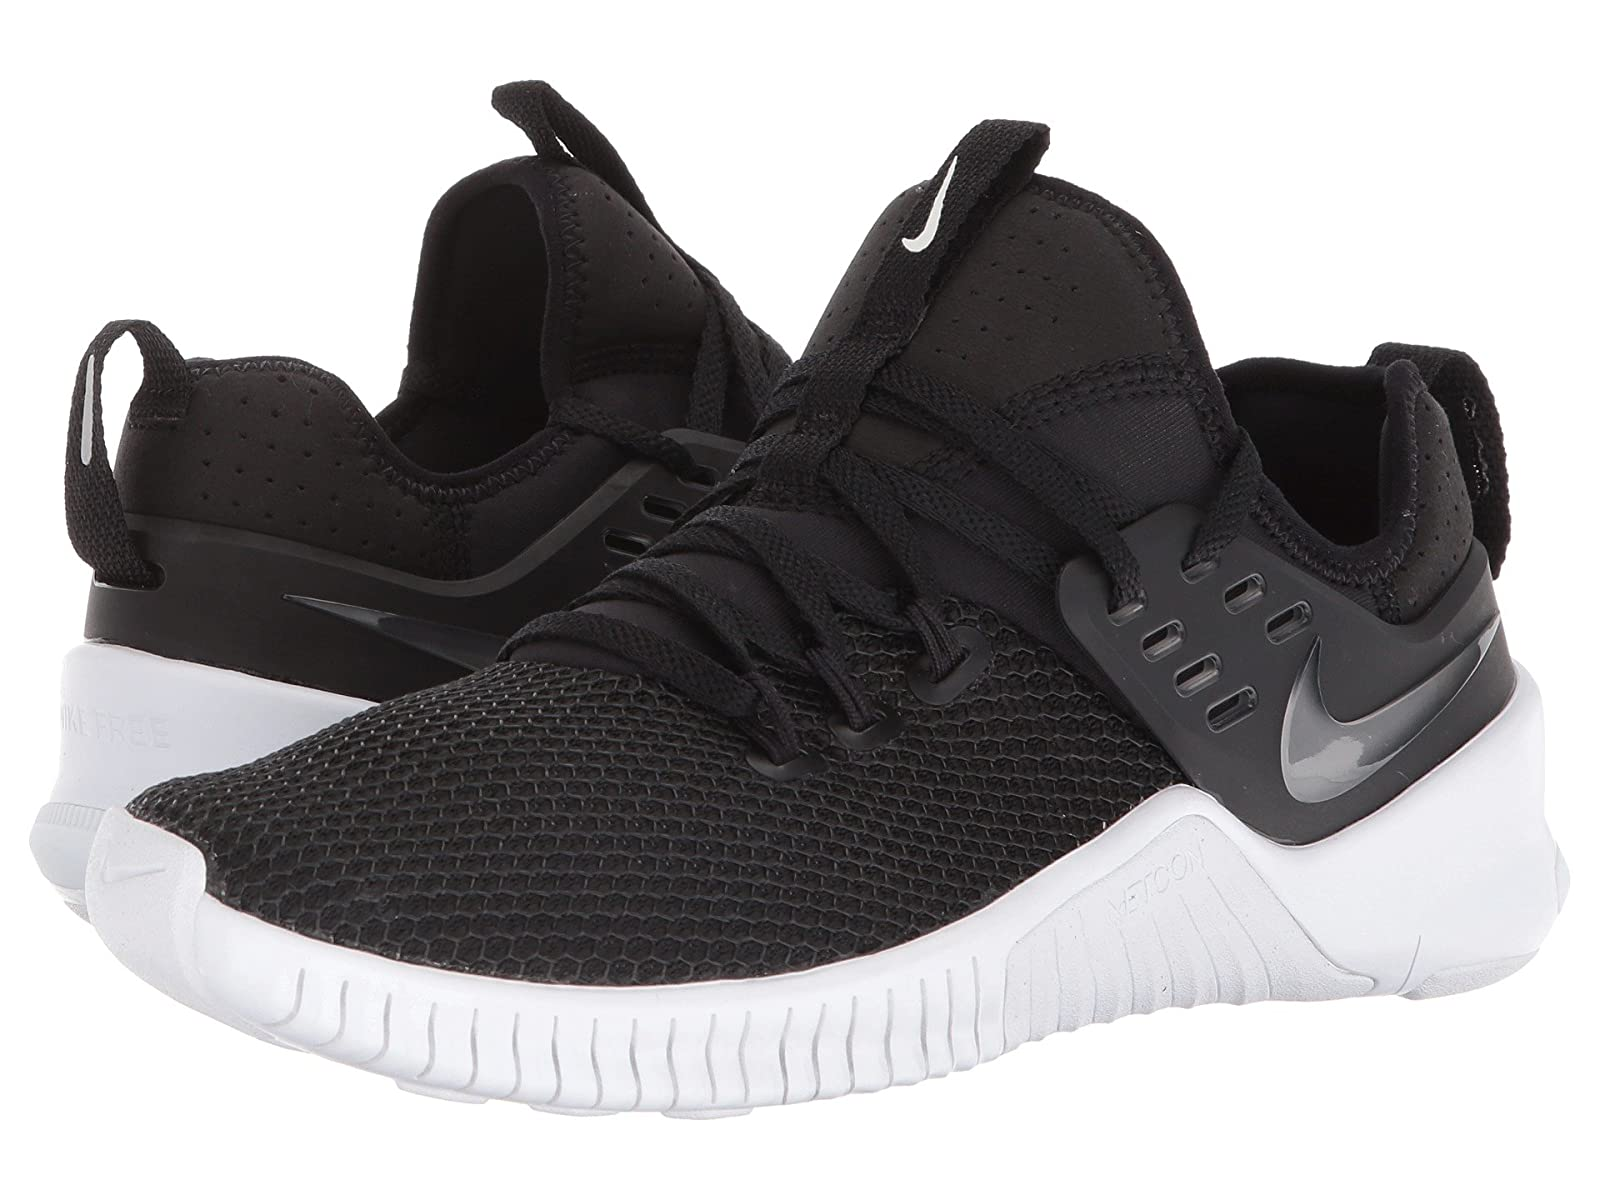 Nike Metcon FreeAtmospheric grades have affordable shoes